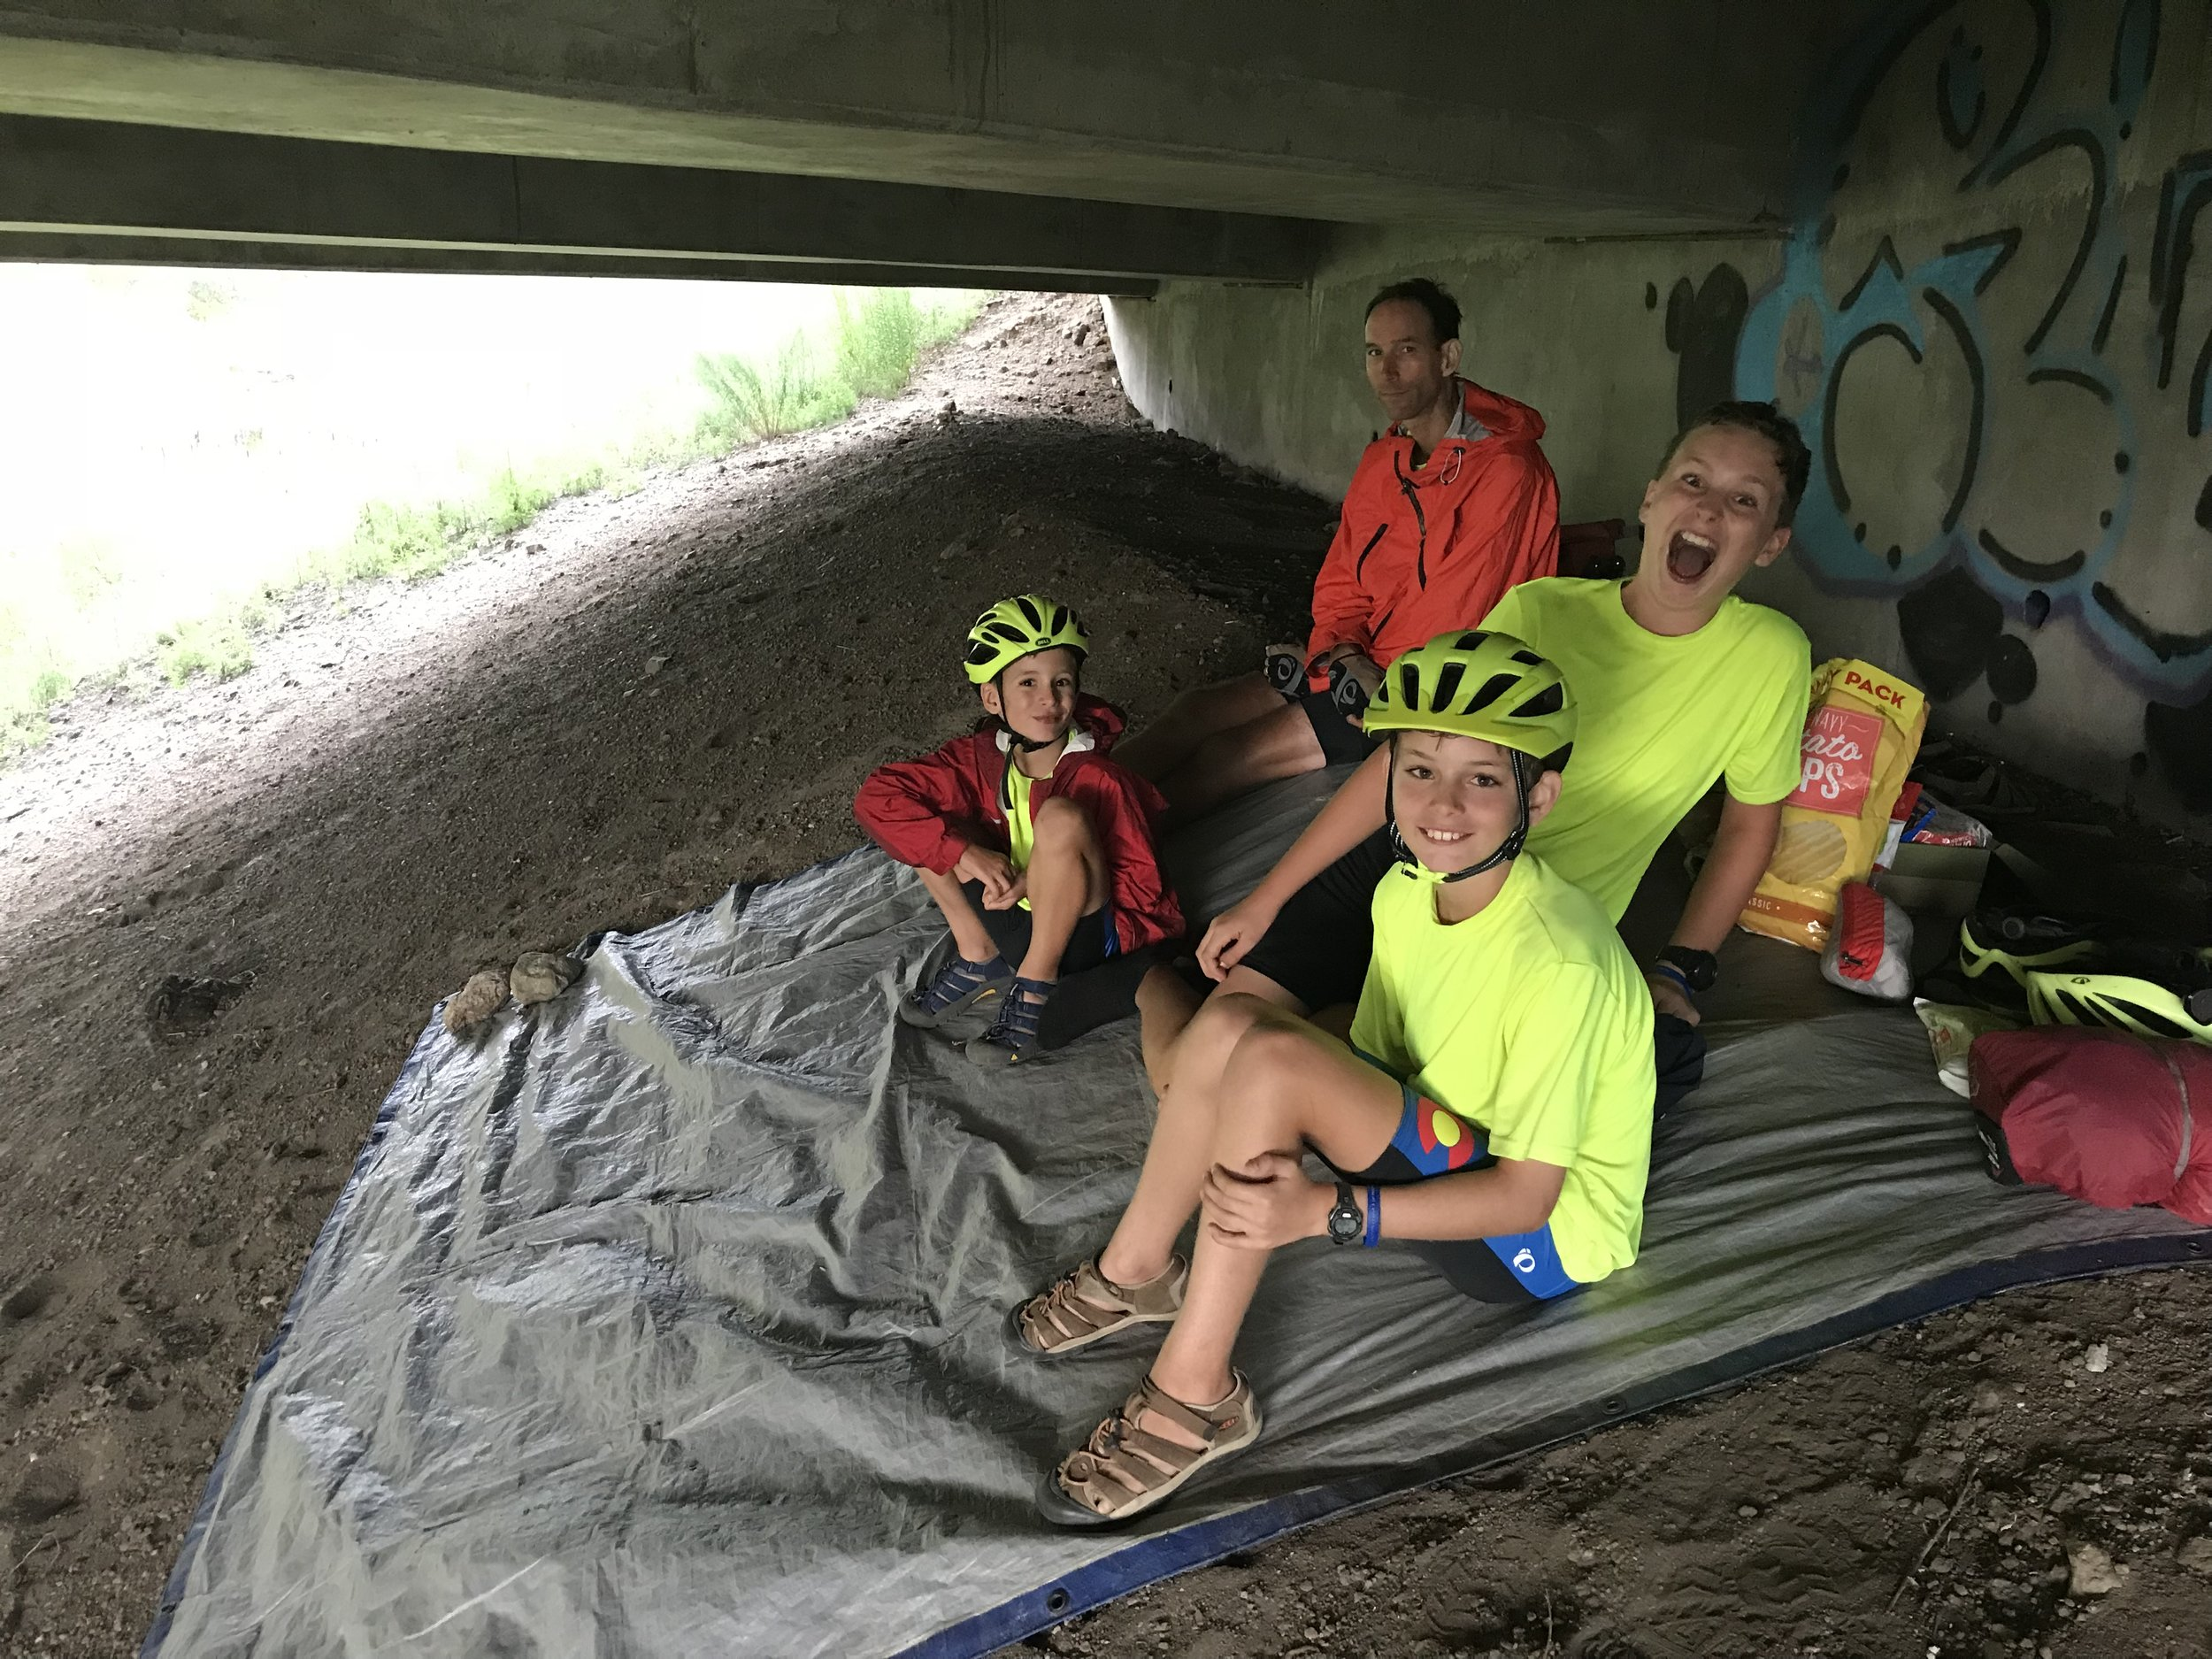 You've heard about several of the storms we have weathered. Here we are under a bridge avoiding another storm that passed after about 30-45 minutes. It was actually a very comfortable place to take shelter. There was even a creek that the boys could play in to let out some creative energy. (See next picture.)